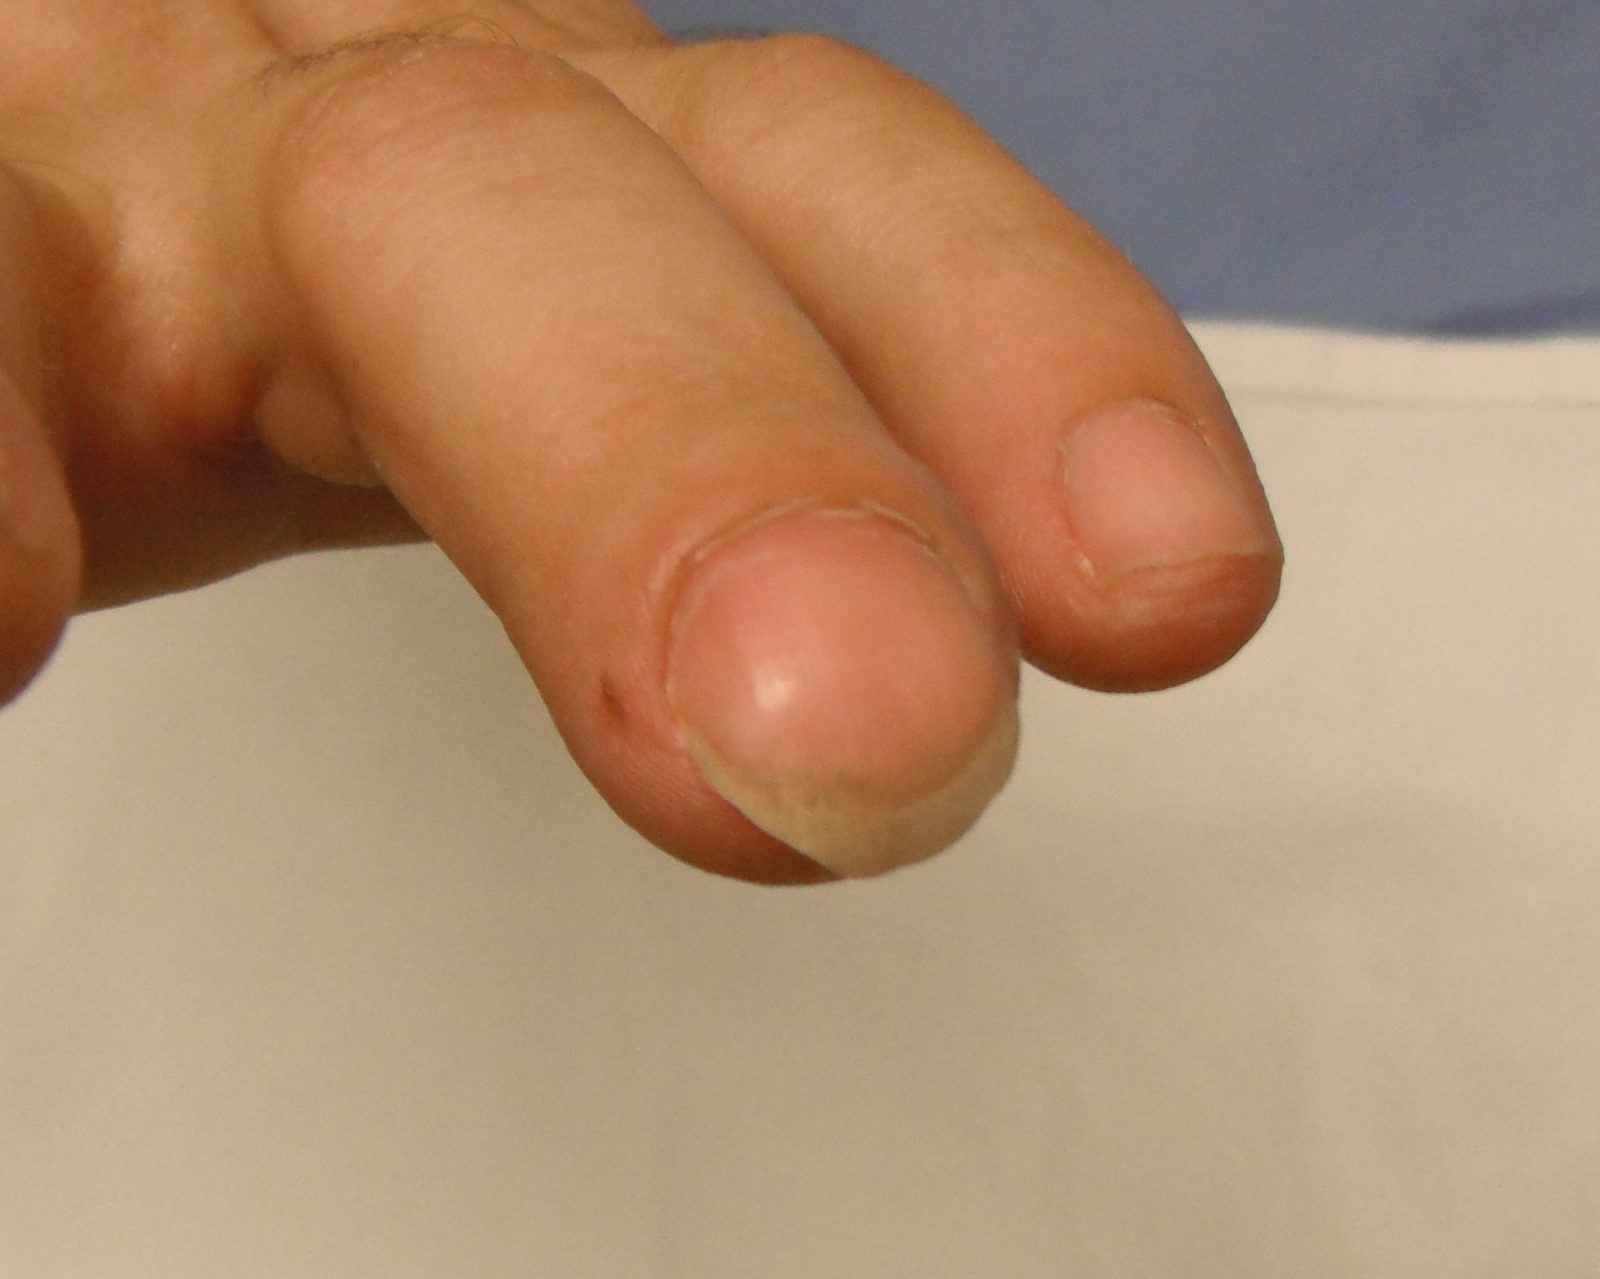 Nail Bed Lacerations | The Bone School